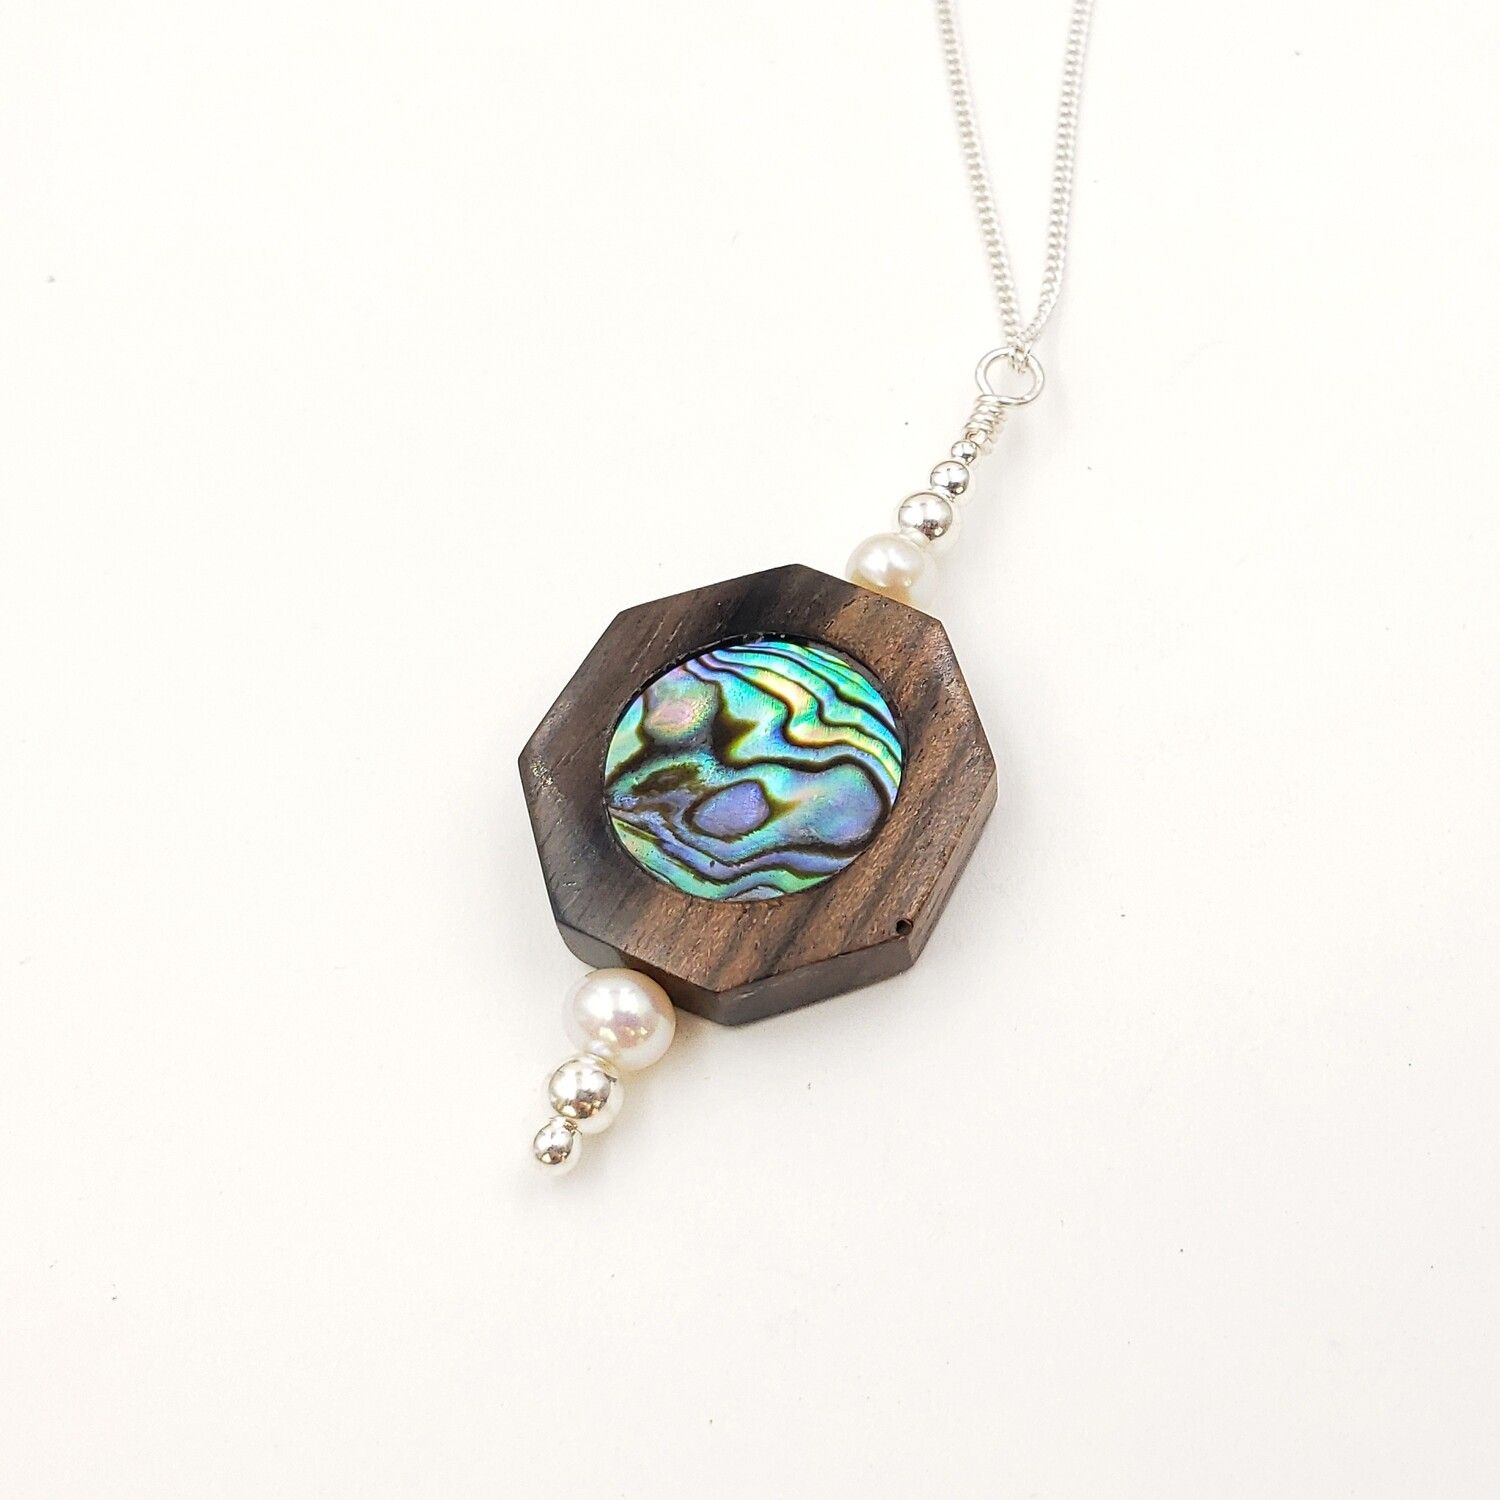 Wooden Octagon With Abalone Inlay Stack Necklace with Freshwater Pearls and Silver Beads